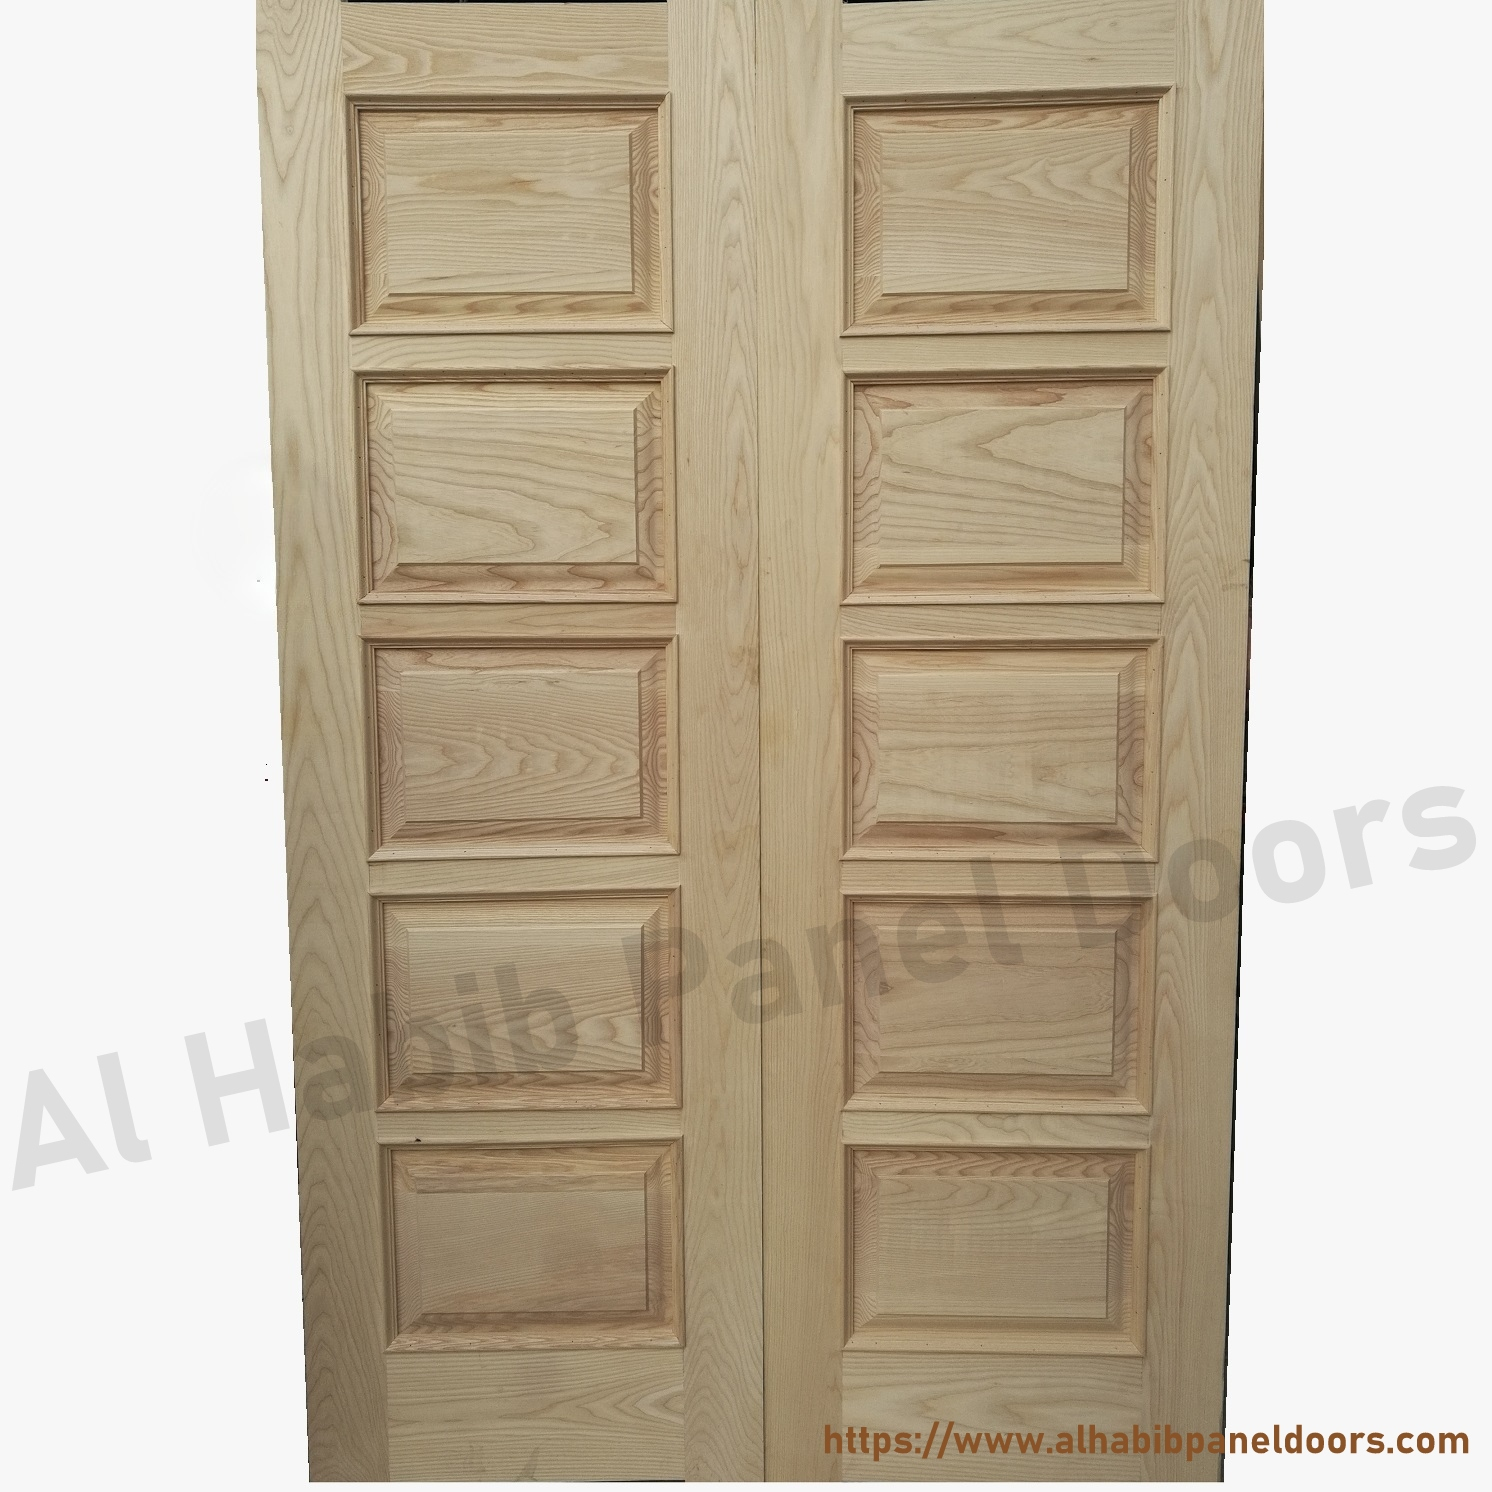 Double door main door designs joy studio design gallery for Wooden double door designs for main door